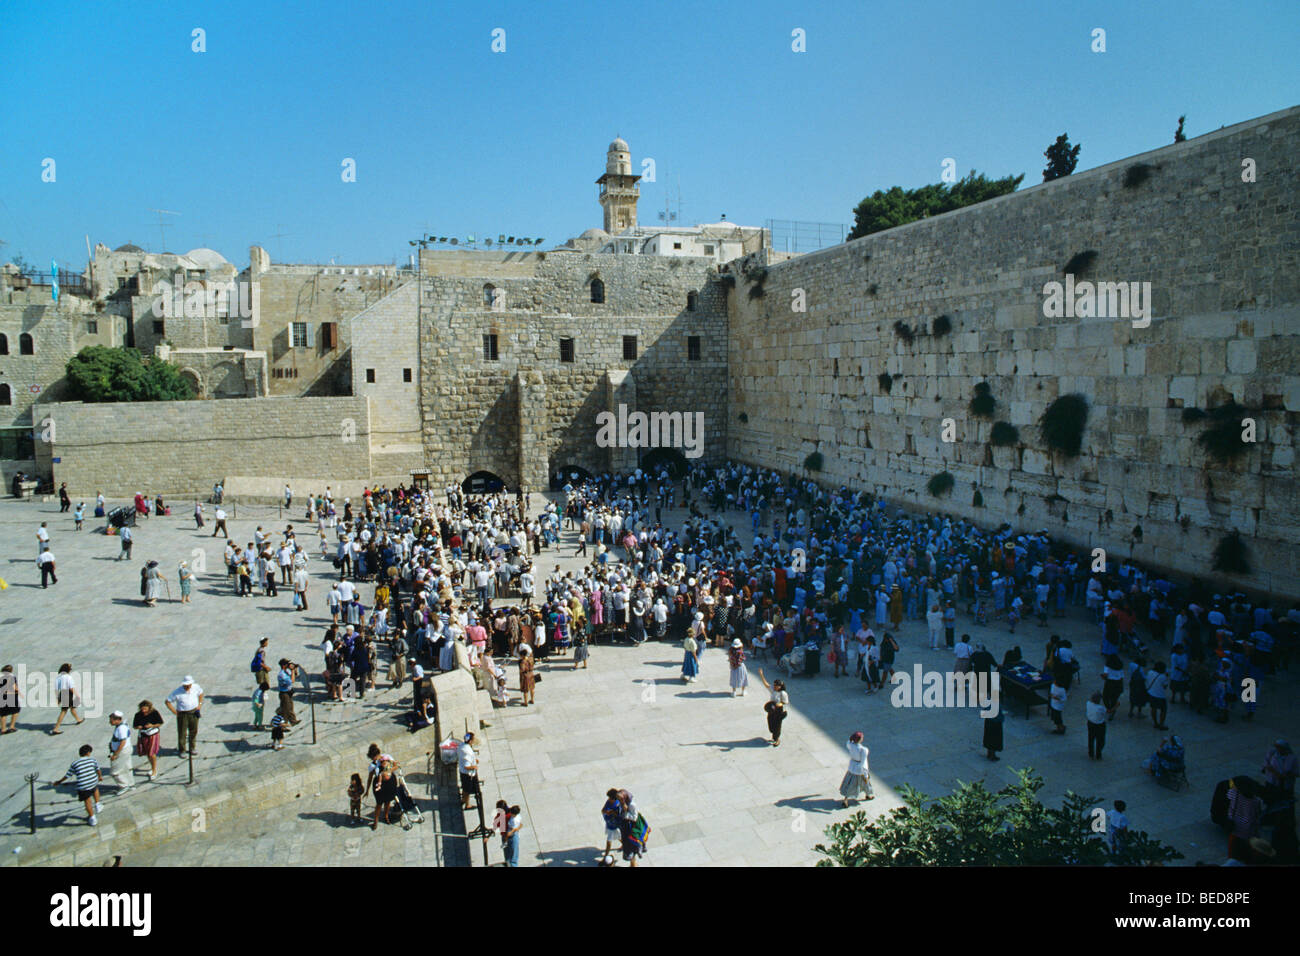 Jewish people praying at the Wailing Wall, Jerusalem, Israel, Near East, Orient - Stock Image